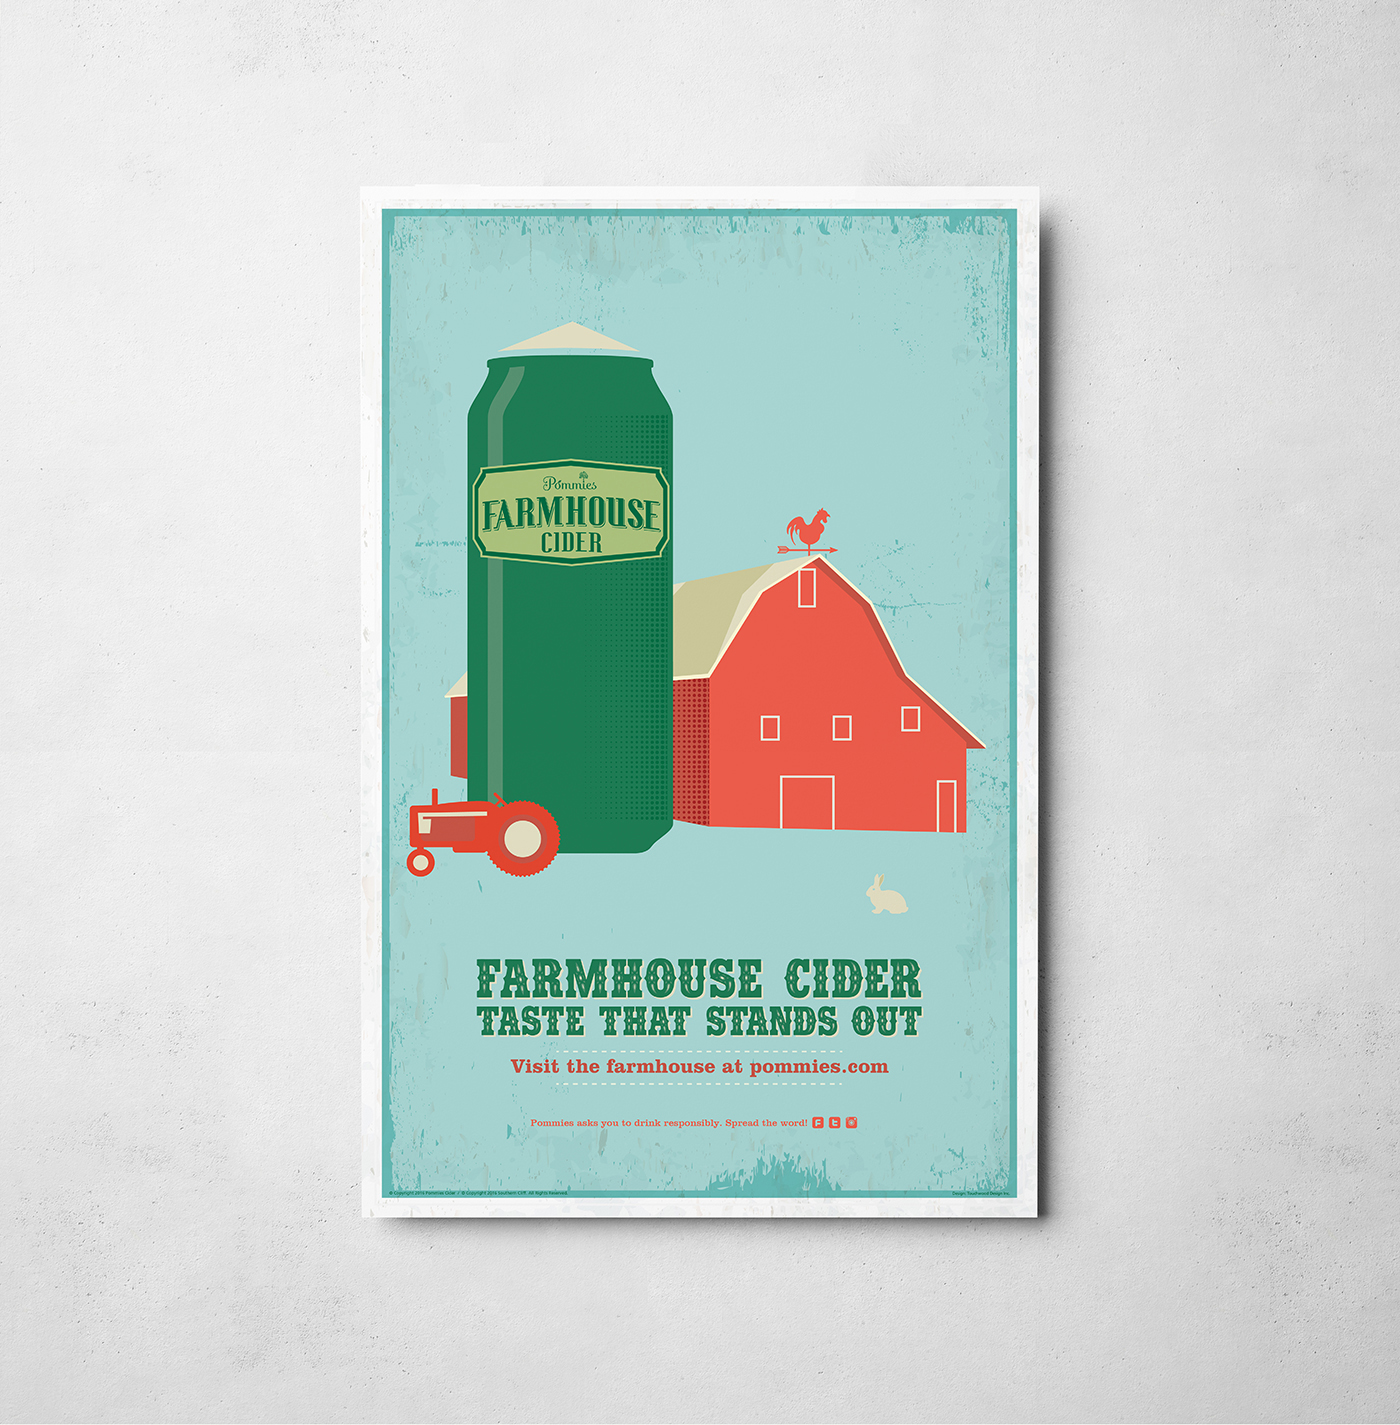 Poster design for Pommies Farmhouse Cider. Featuring a red barn, tractor and rabbit within a farm. Rustic texture within a clean flat design.